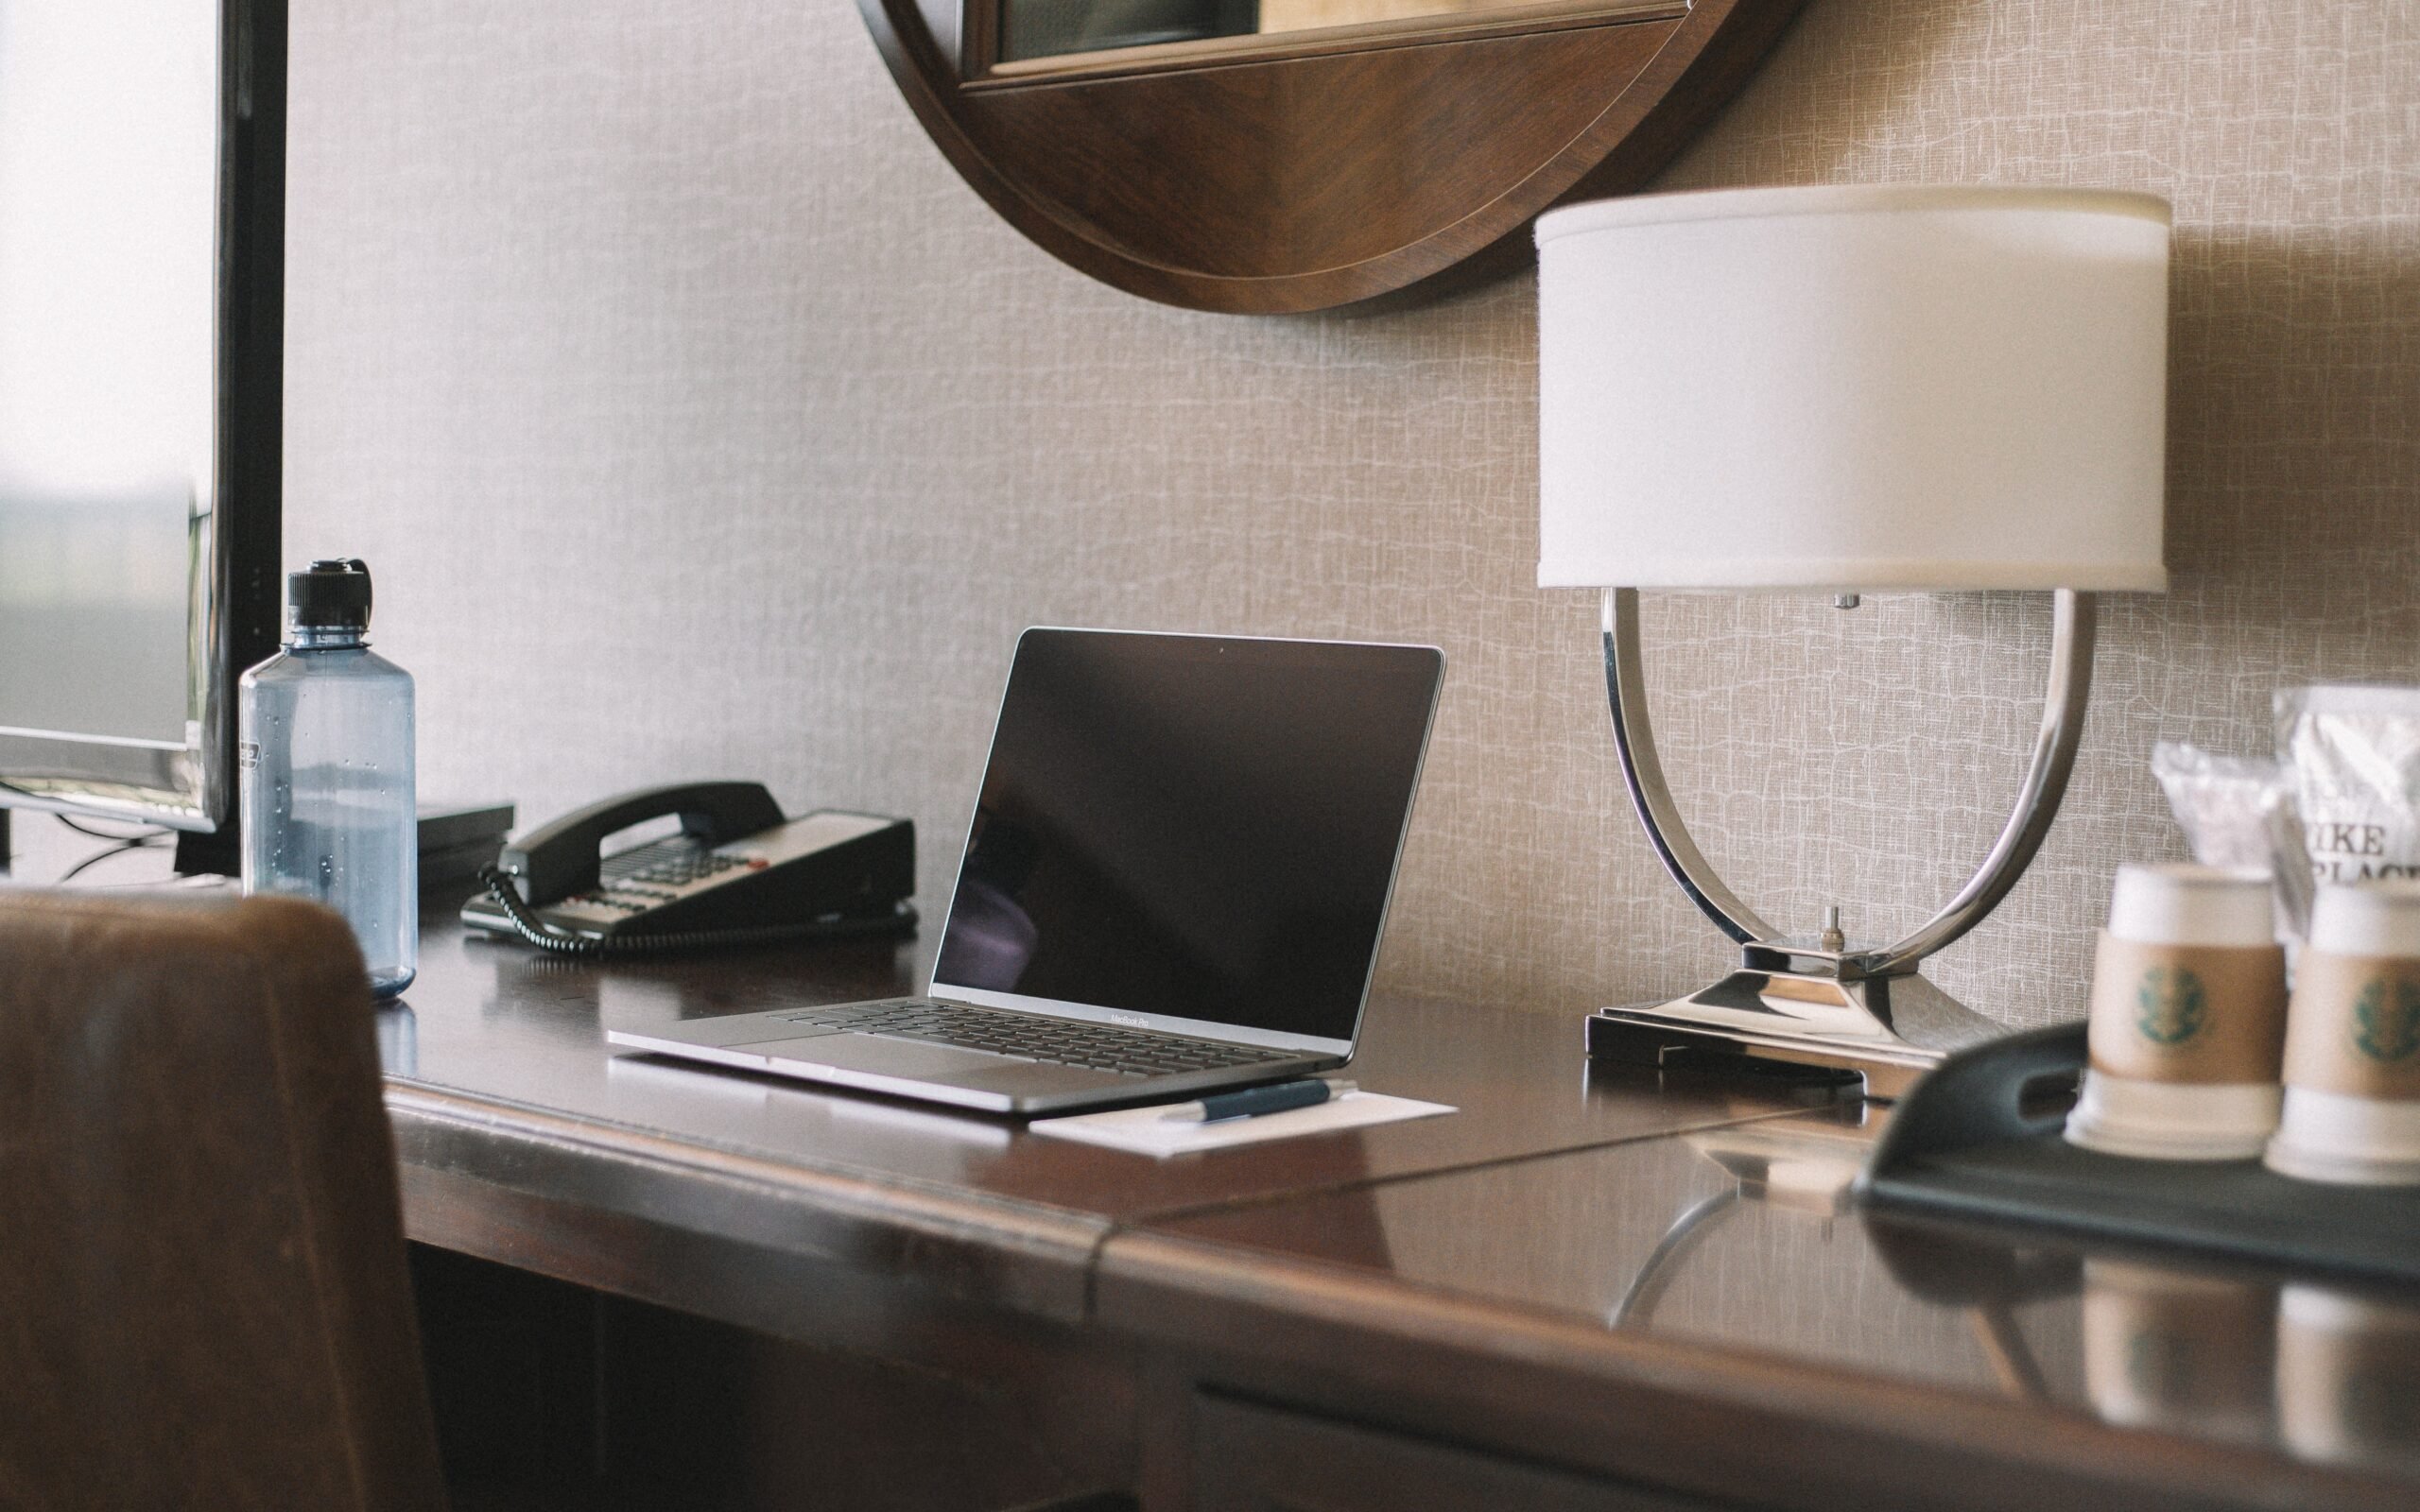 Hotel Check-In Automation: Is It Time The Hotel Industry Abandons The Front Desk?